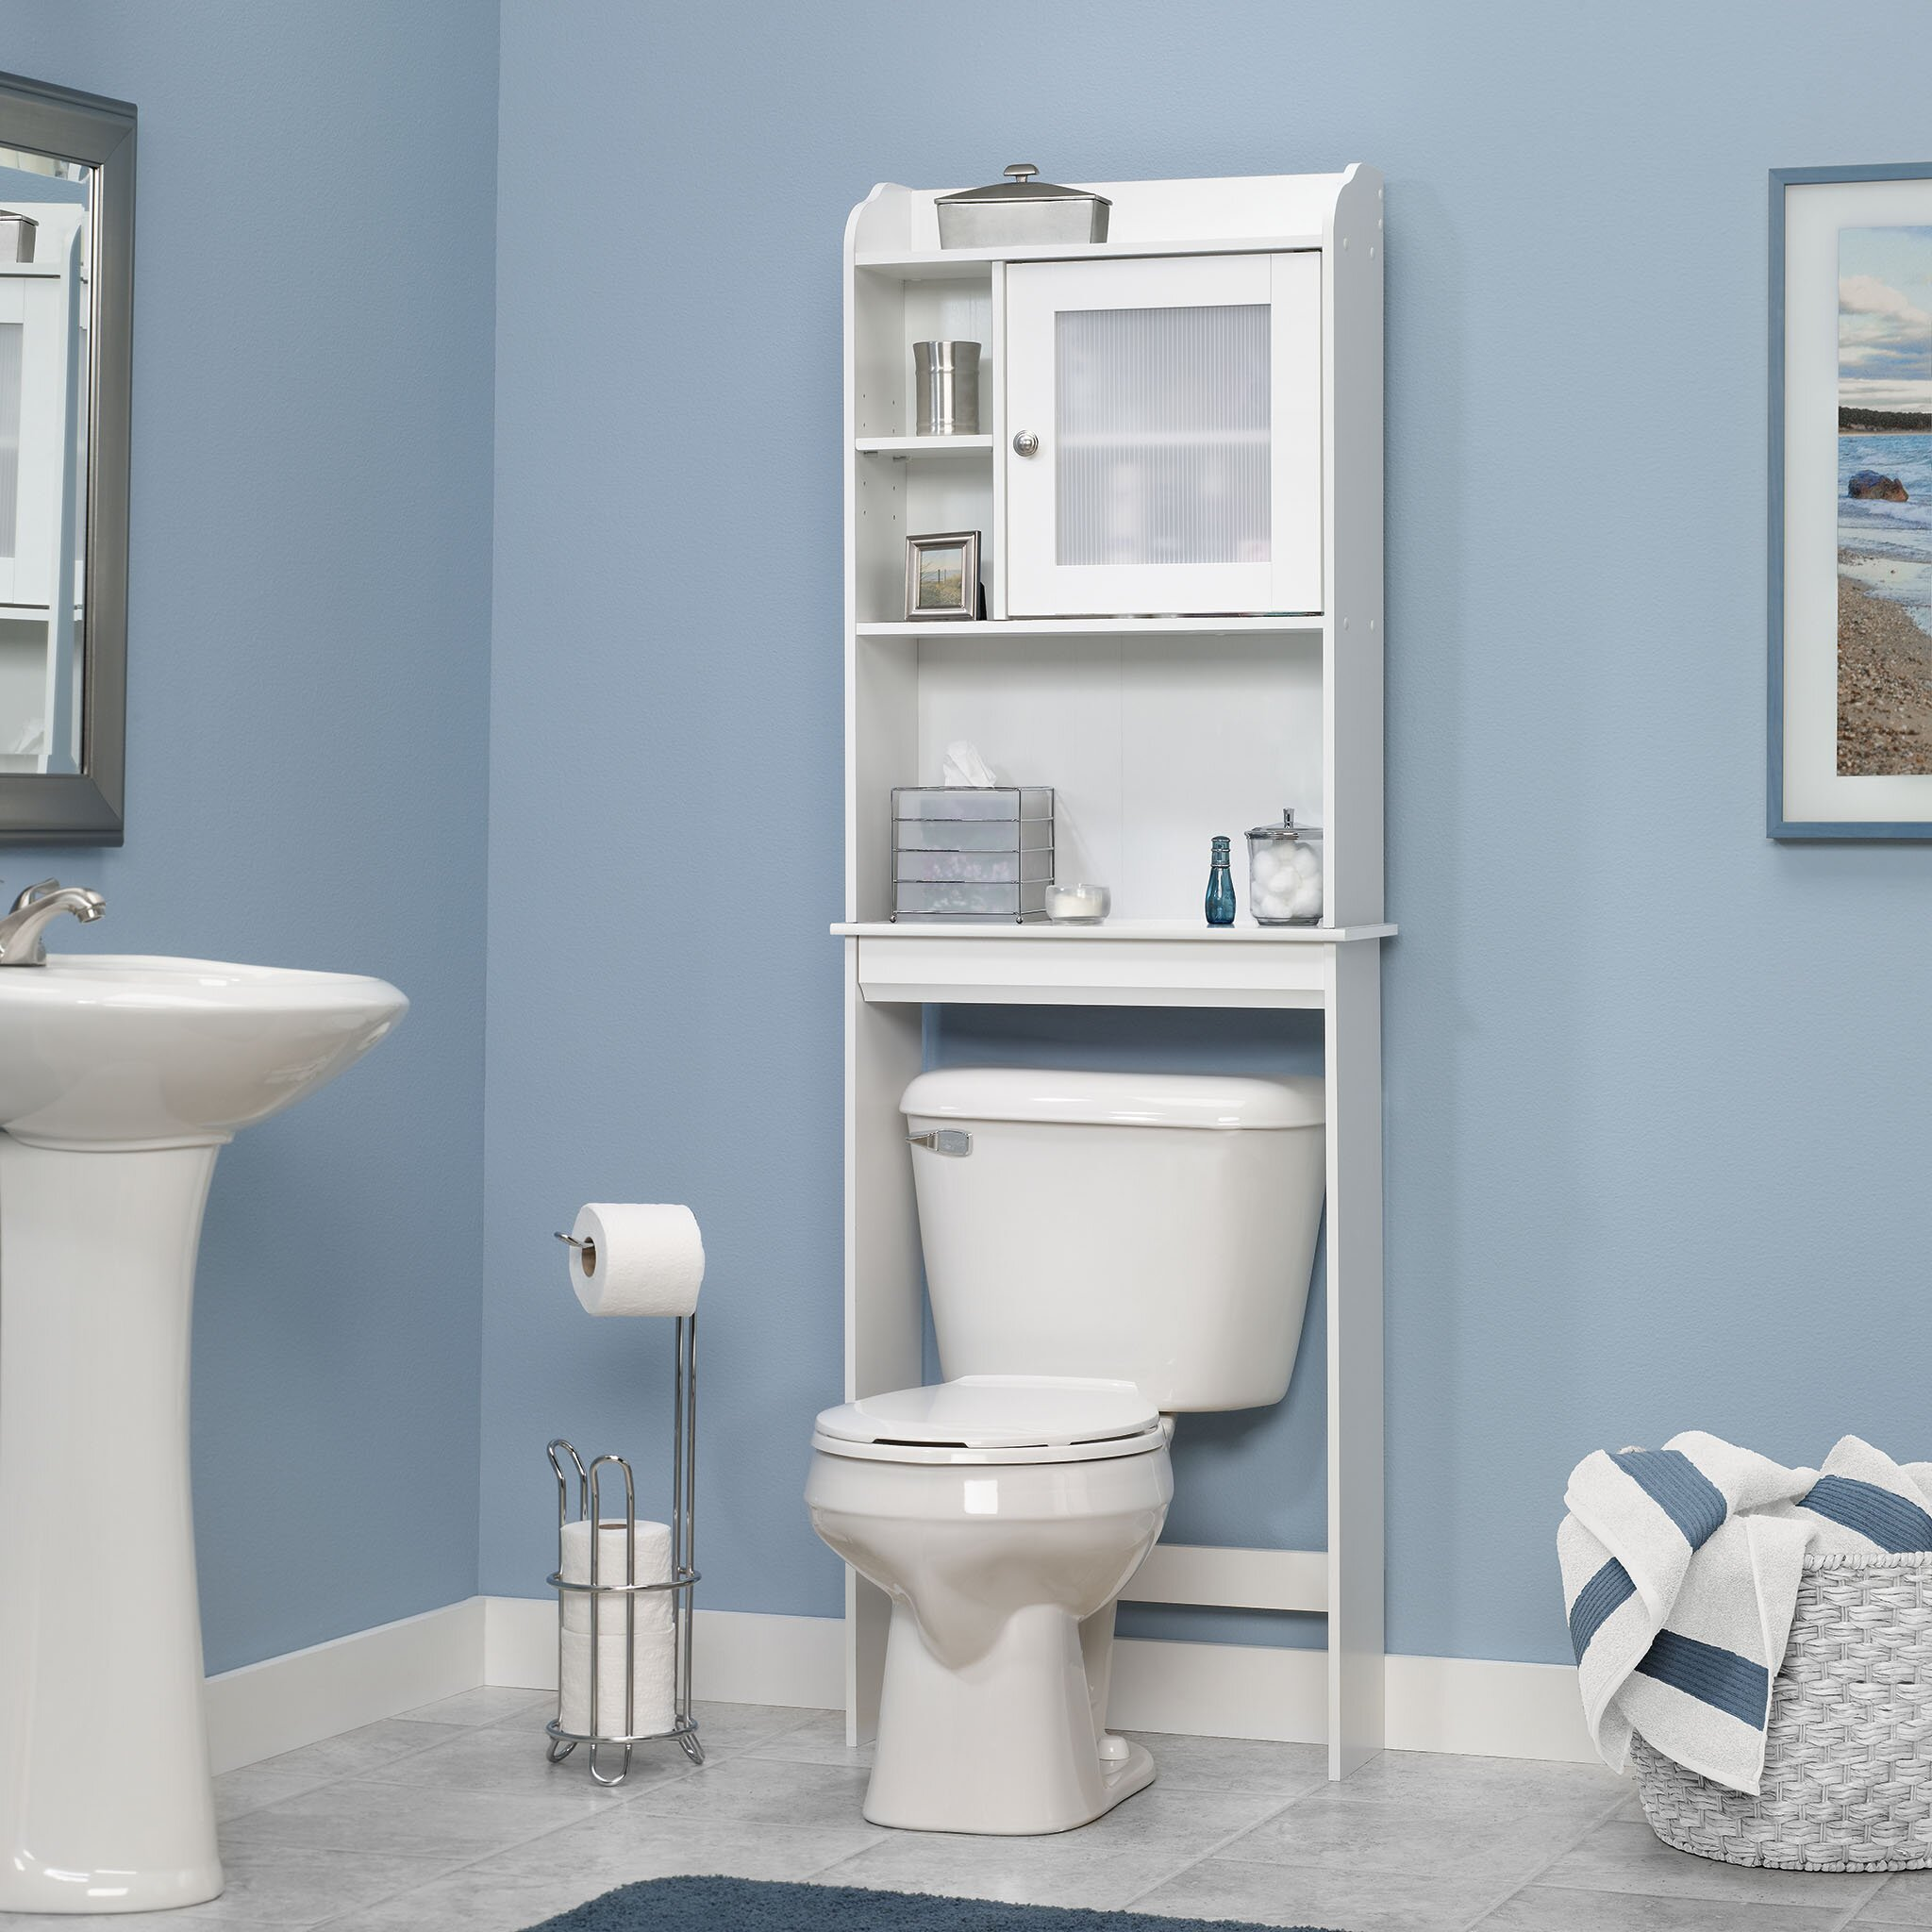 Over The Toilet Storage Cabinets Bathroom Etagere Wayfairca. Best Image of Over The Toilet Storage Cabinet   All Can Download